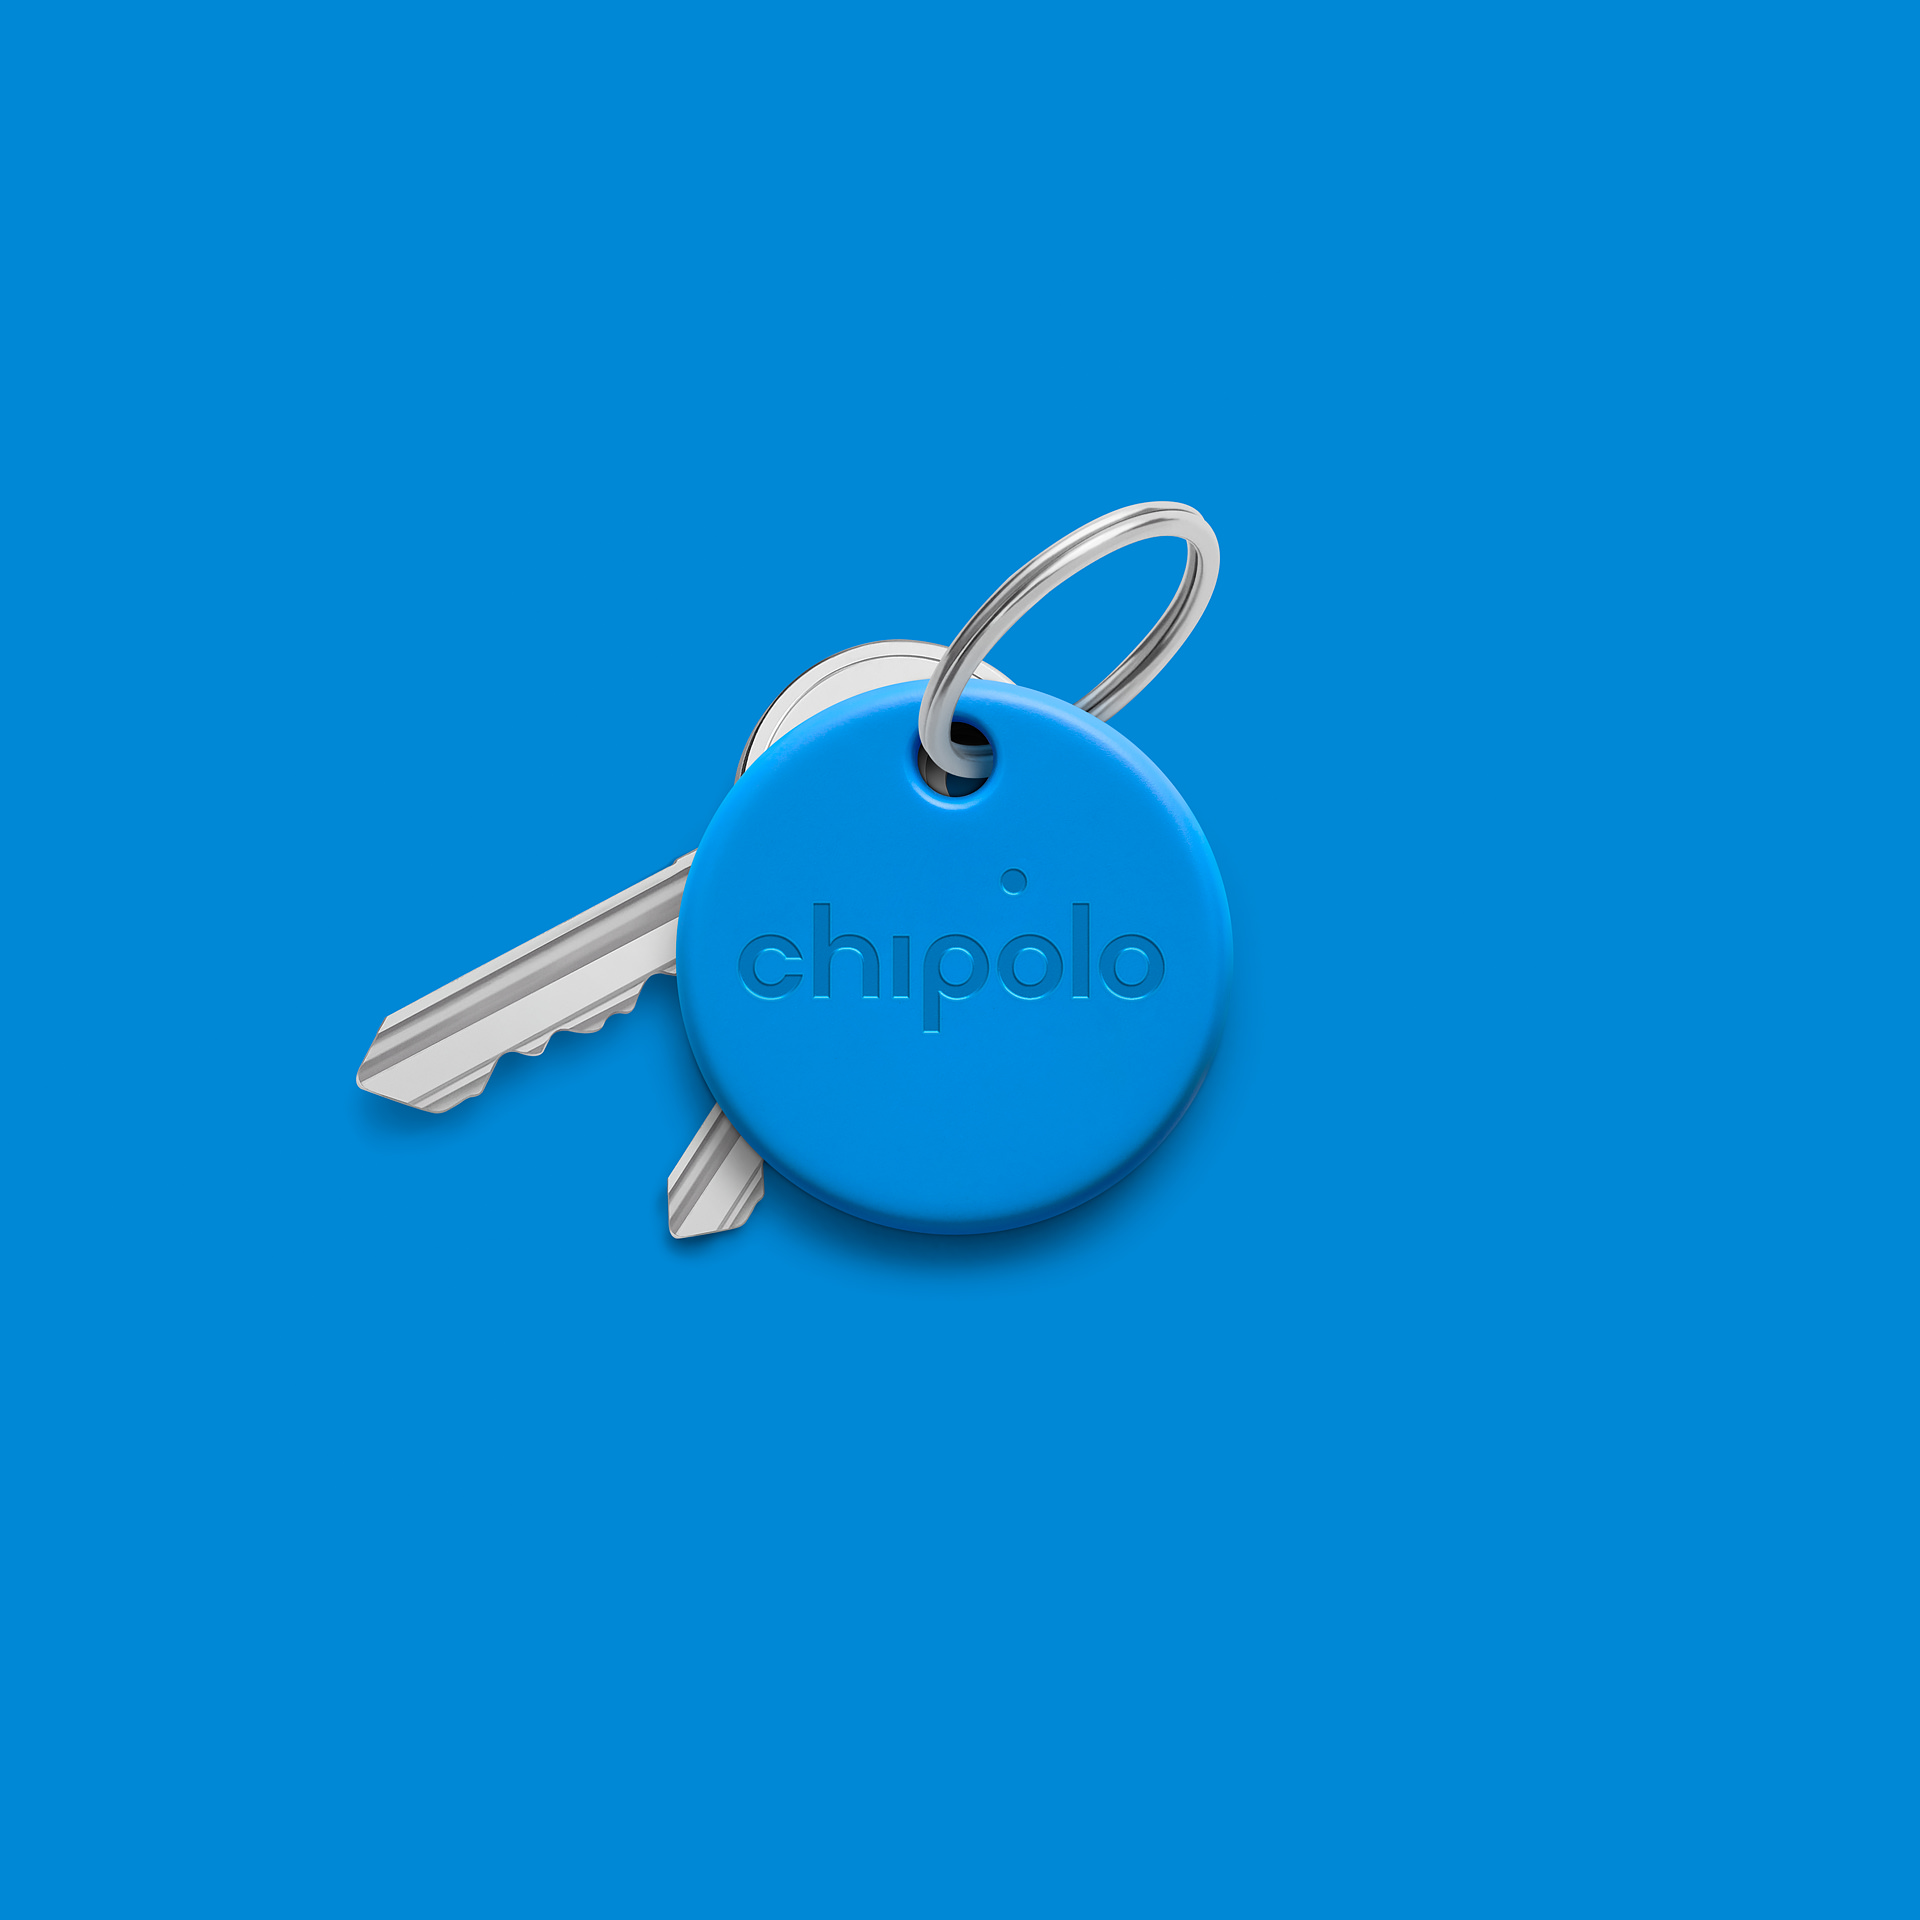 Chipolo-ONE-topdown-blue_final-1